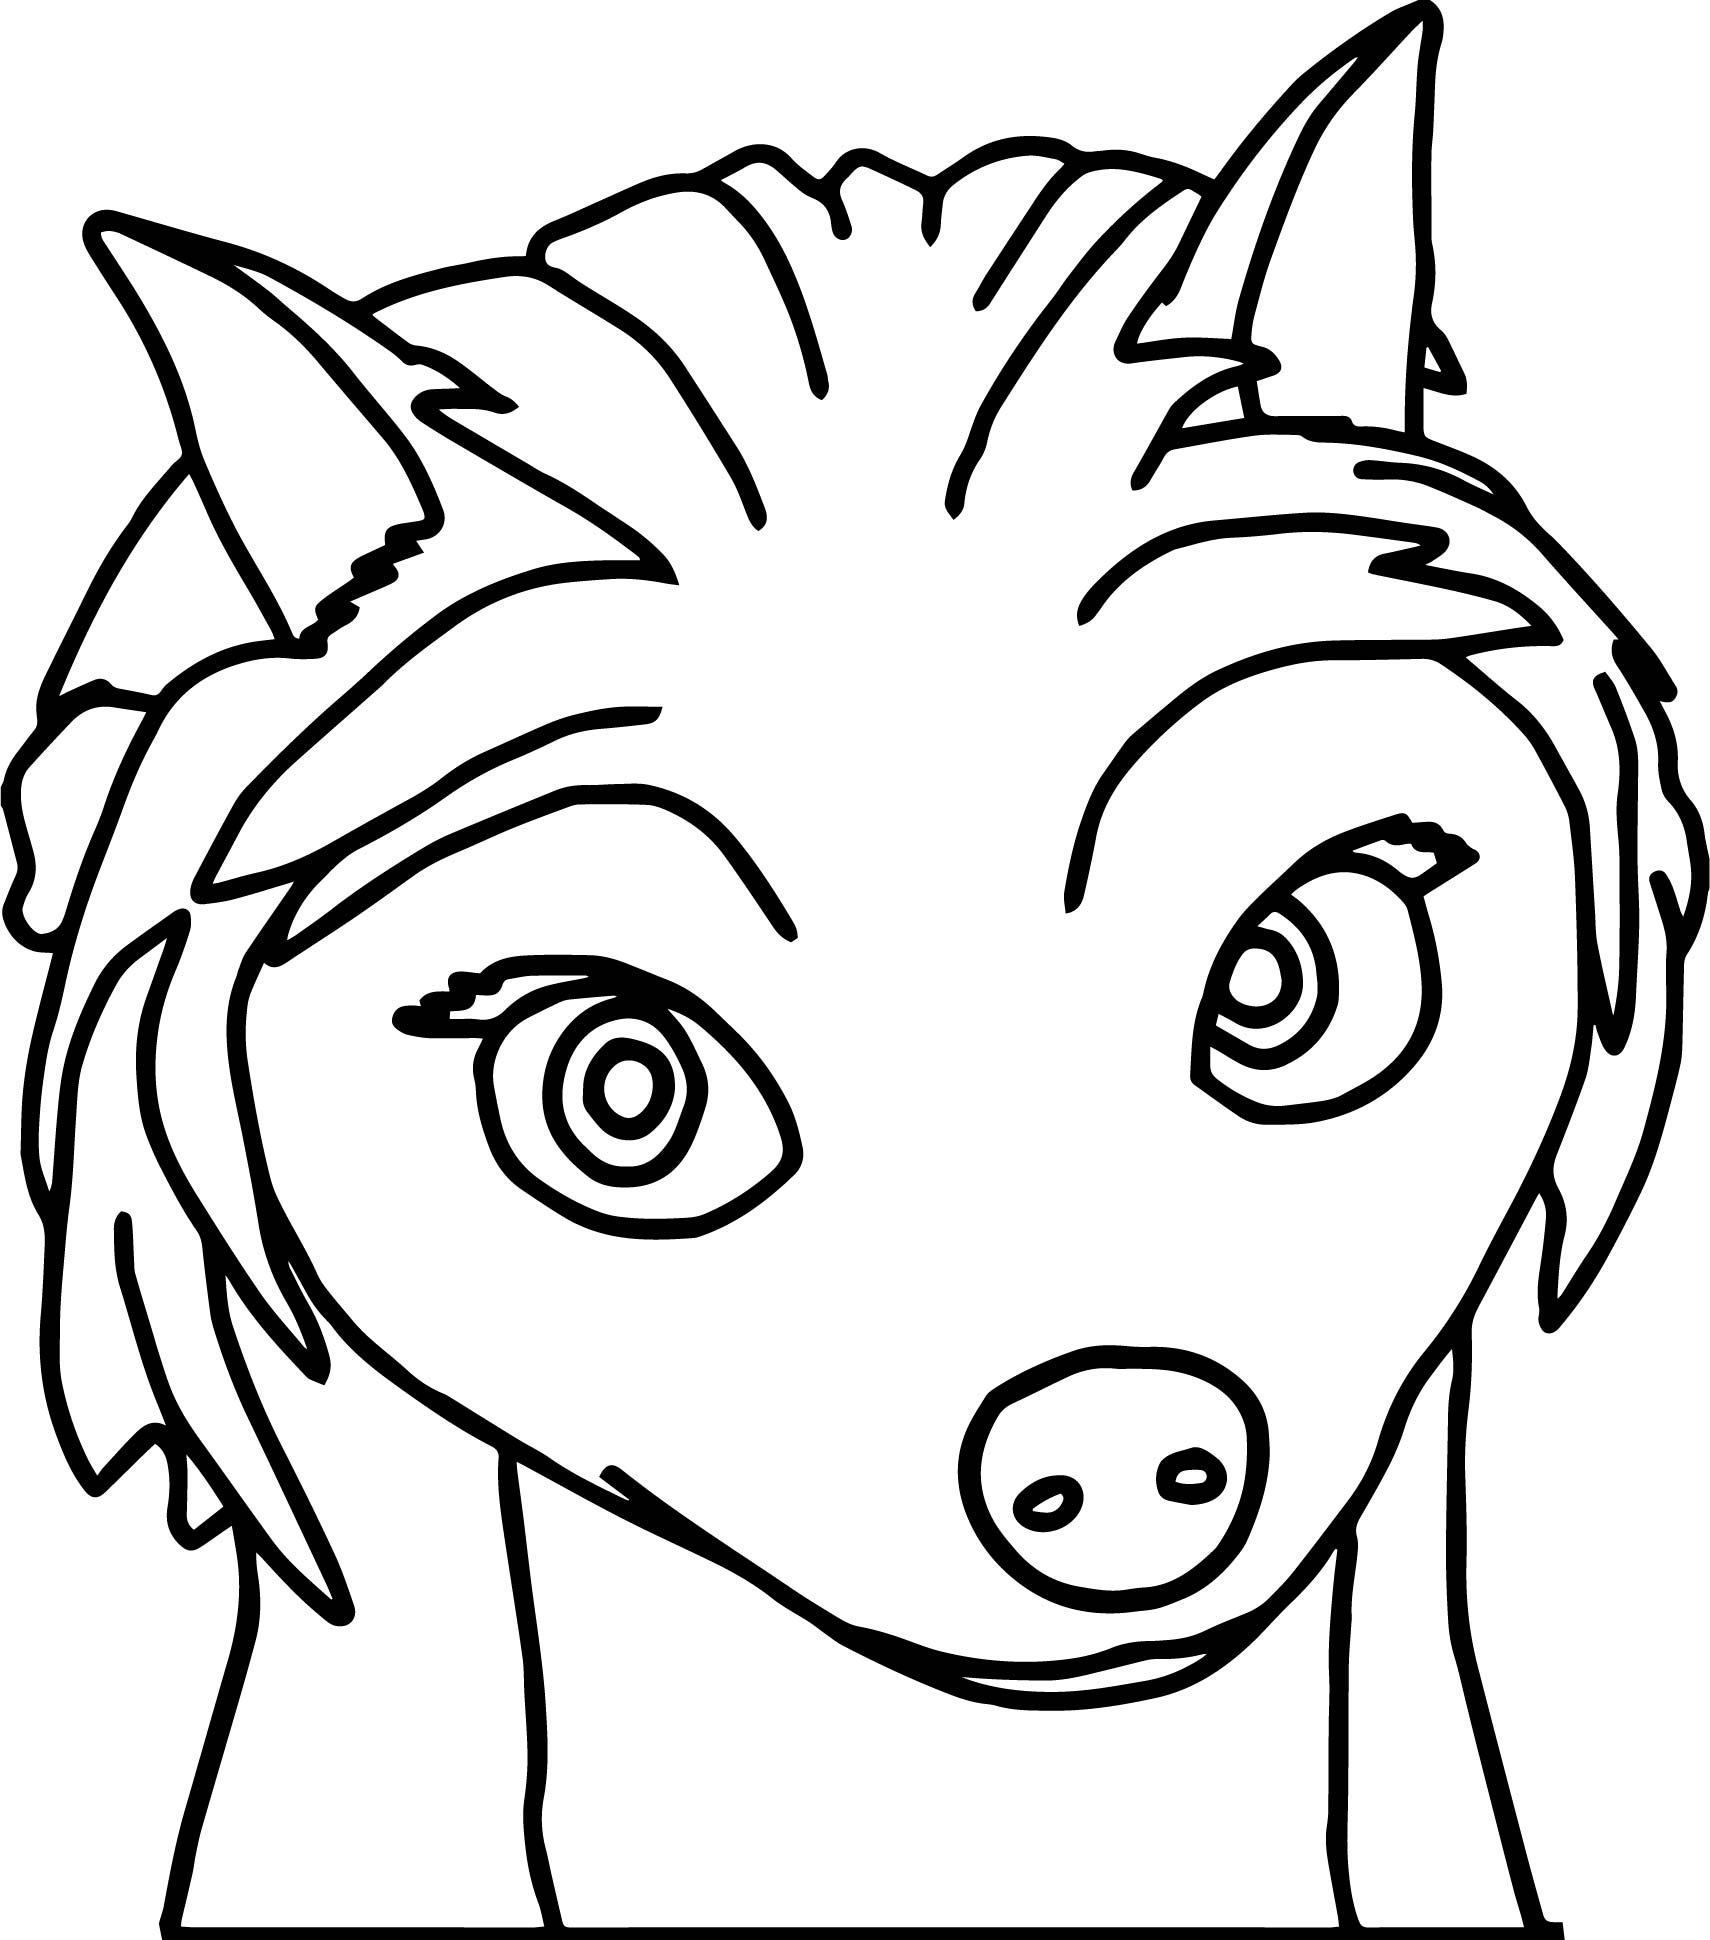 Alpha And Omega Coloring Pages To Print - Eskayalitim